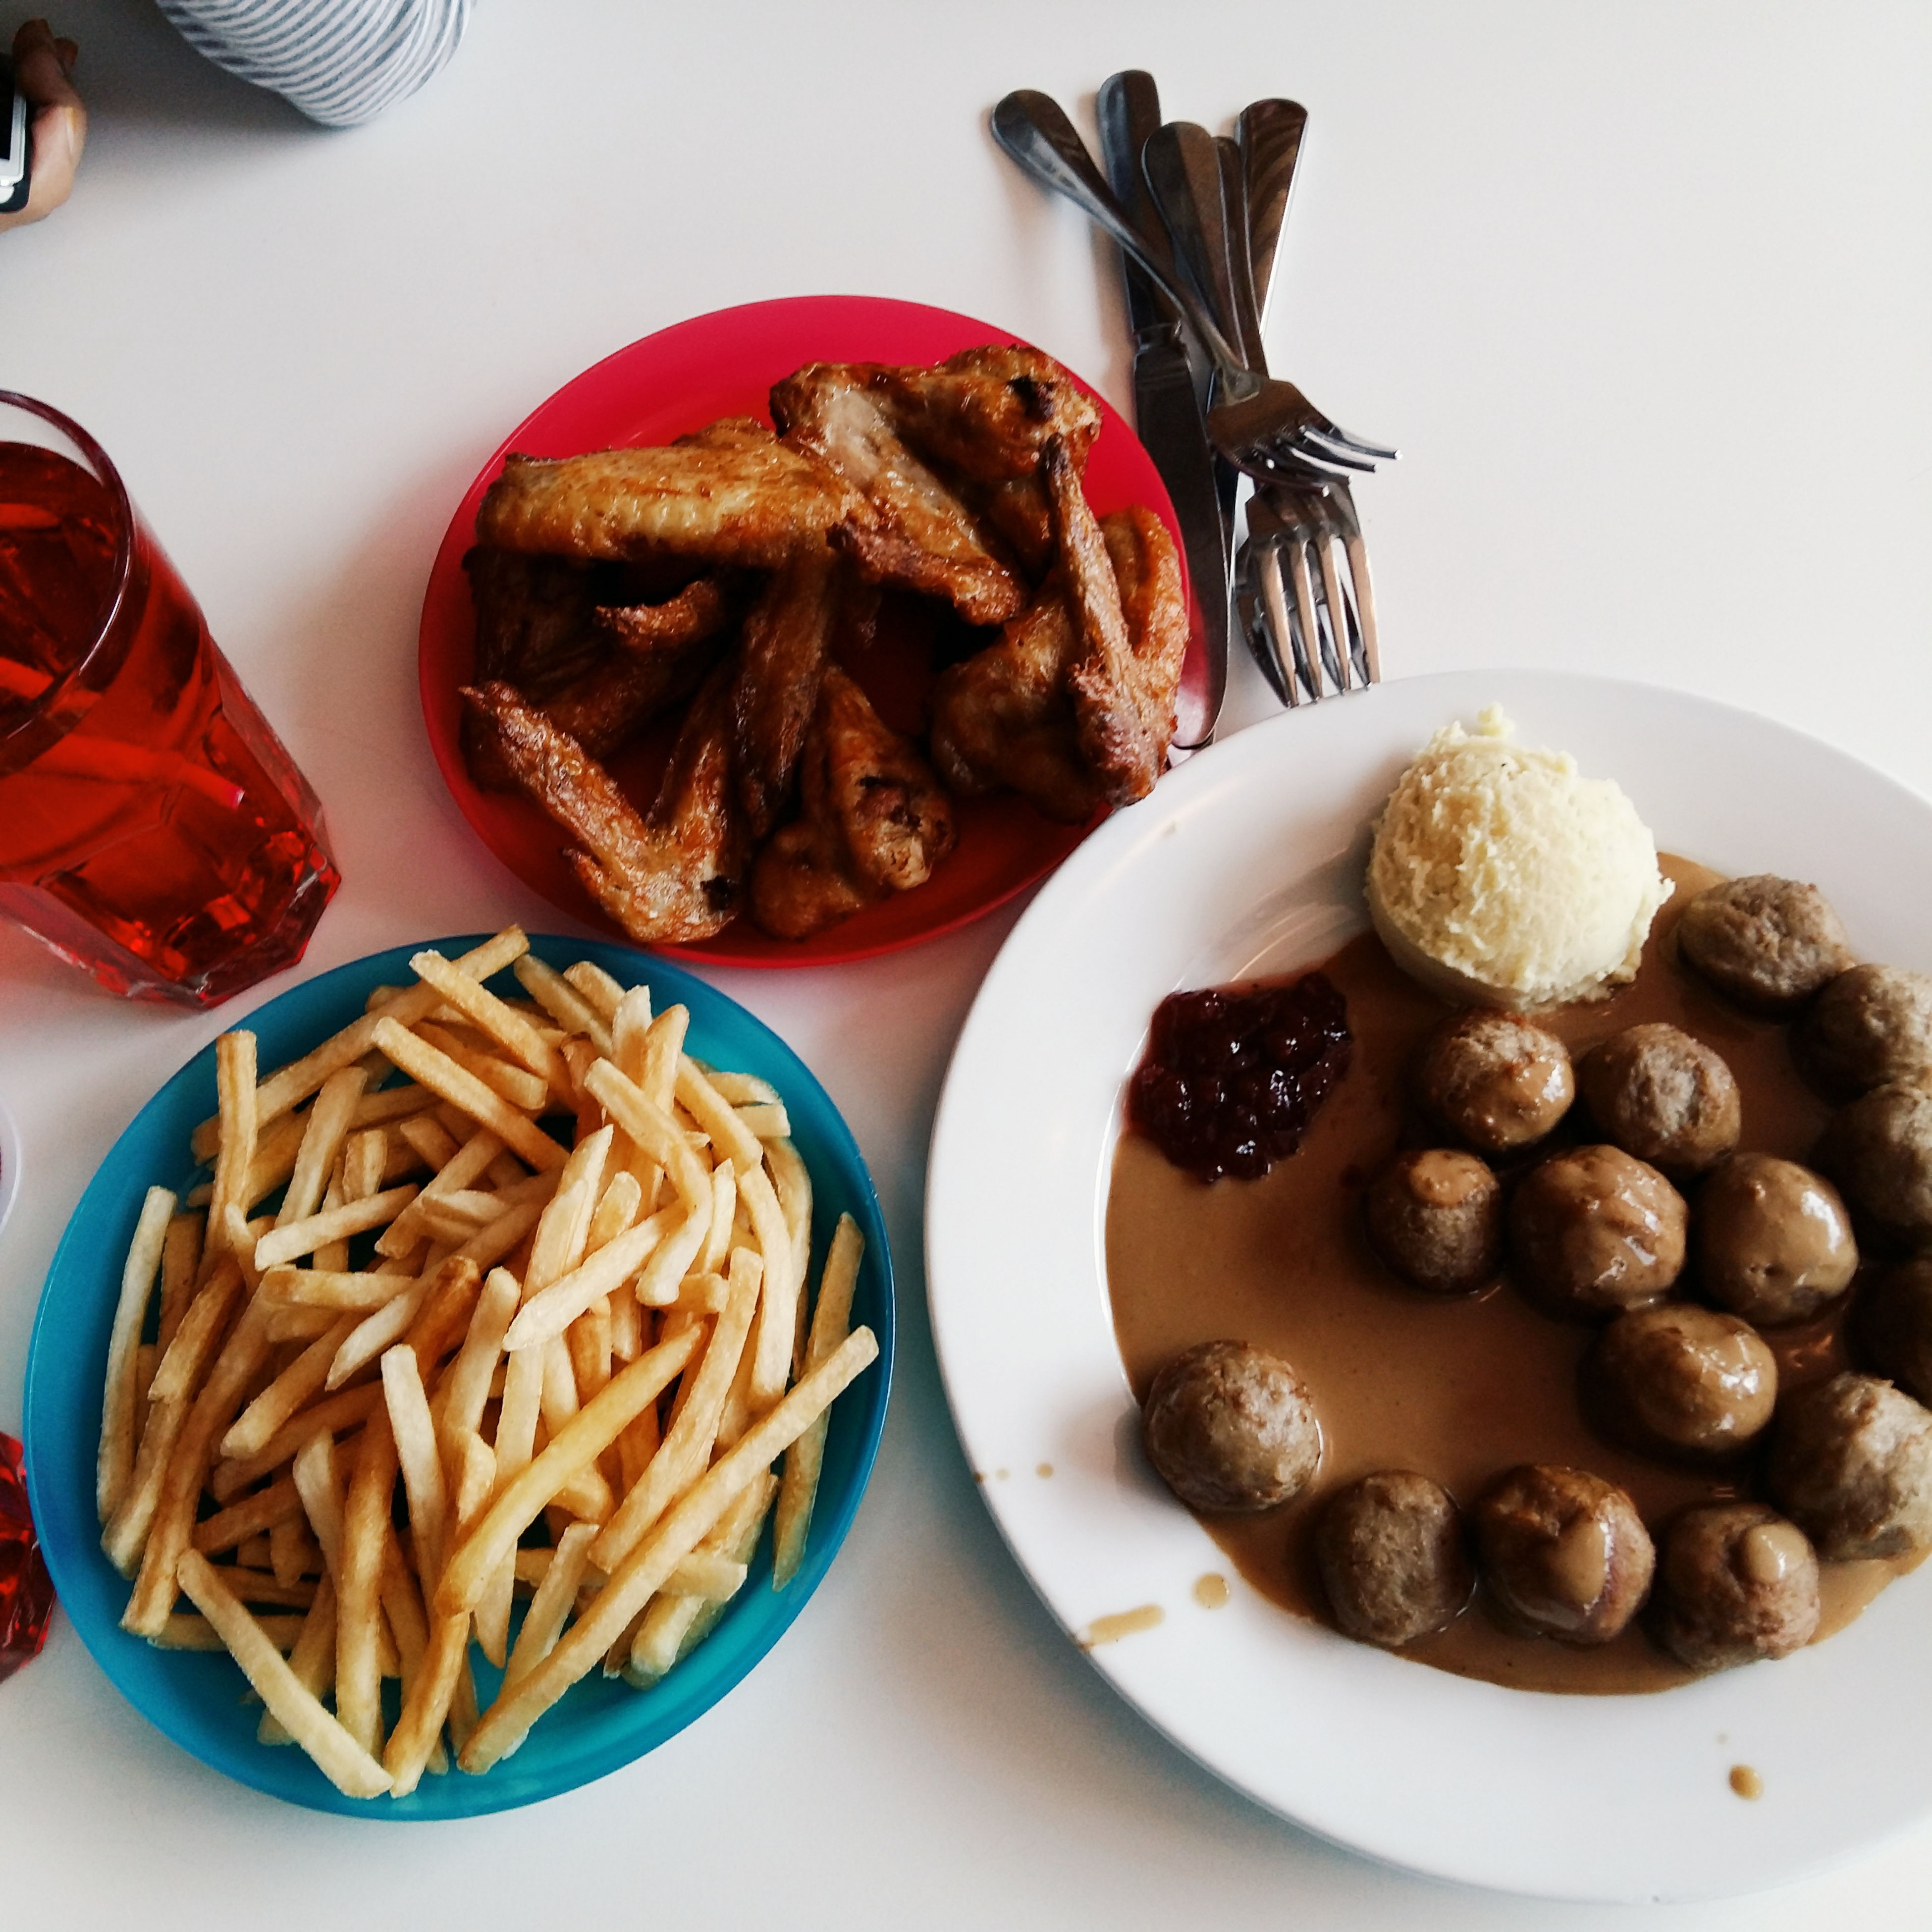 Meatball Meatball Gravy Fries Chicken Wings Delicious Love Date Babe For The First Time At IKEA Damansara Malaysia